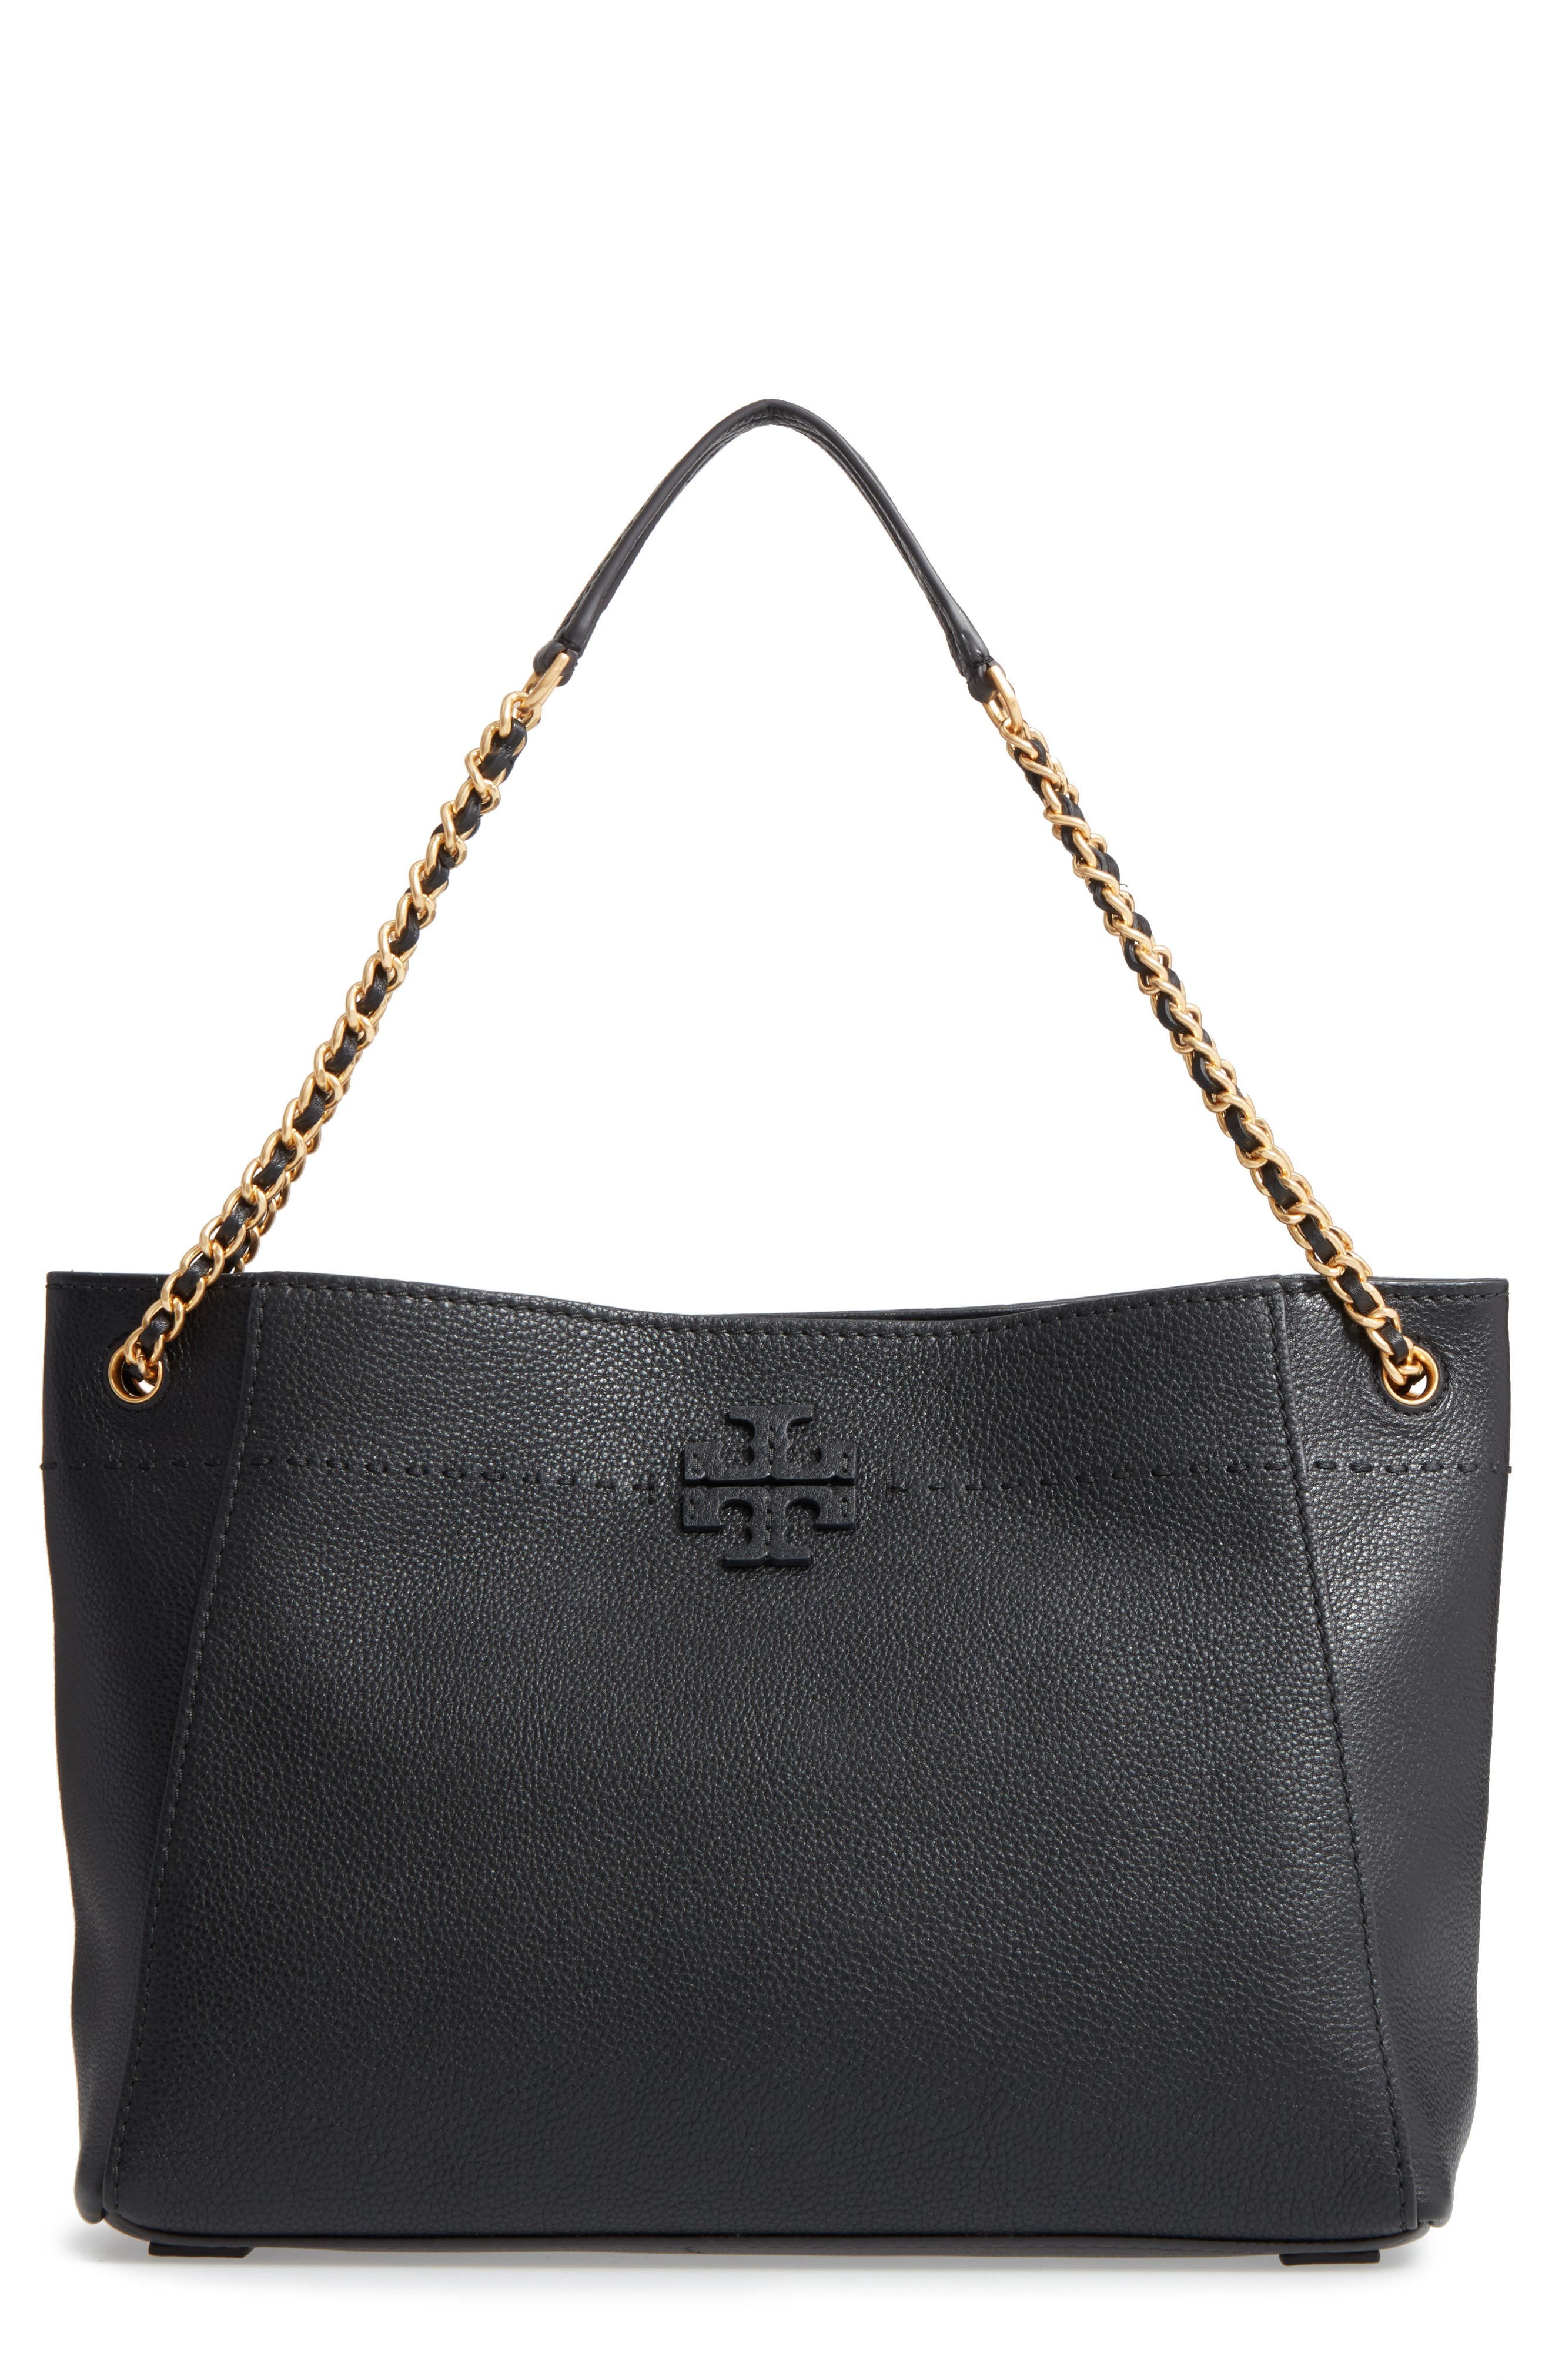 TORY BURCH McGraw Slouchy Leather Shoulder Bag, Main, color, 001